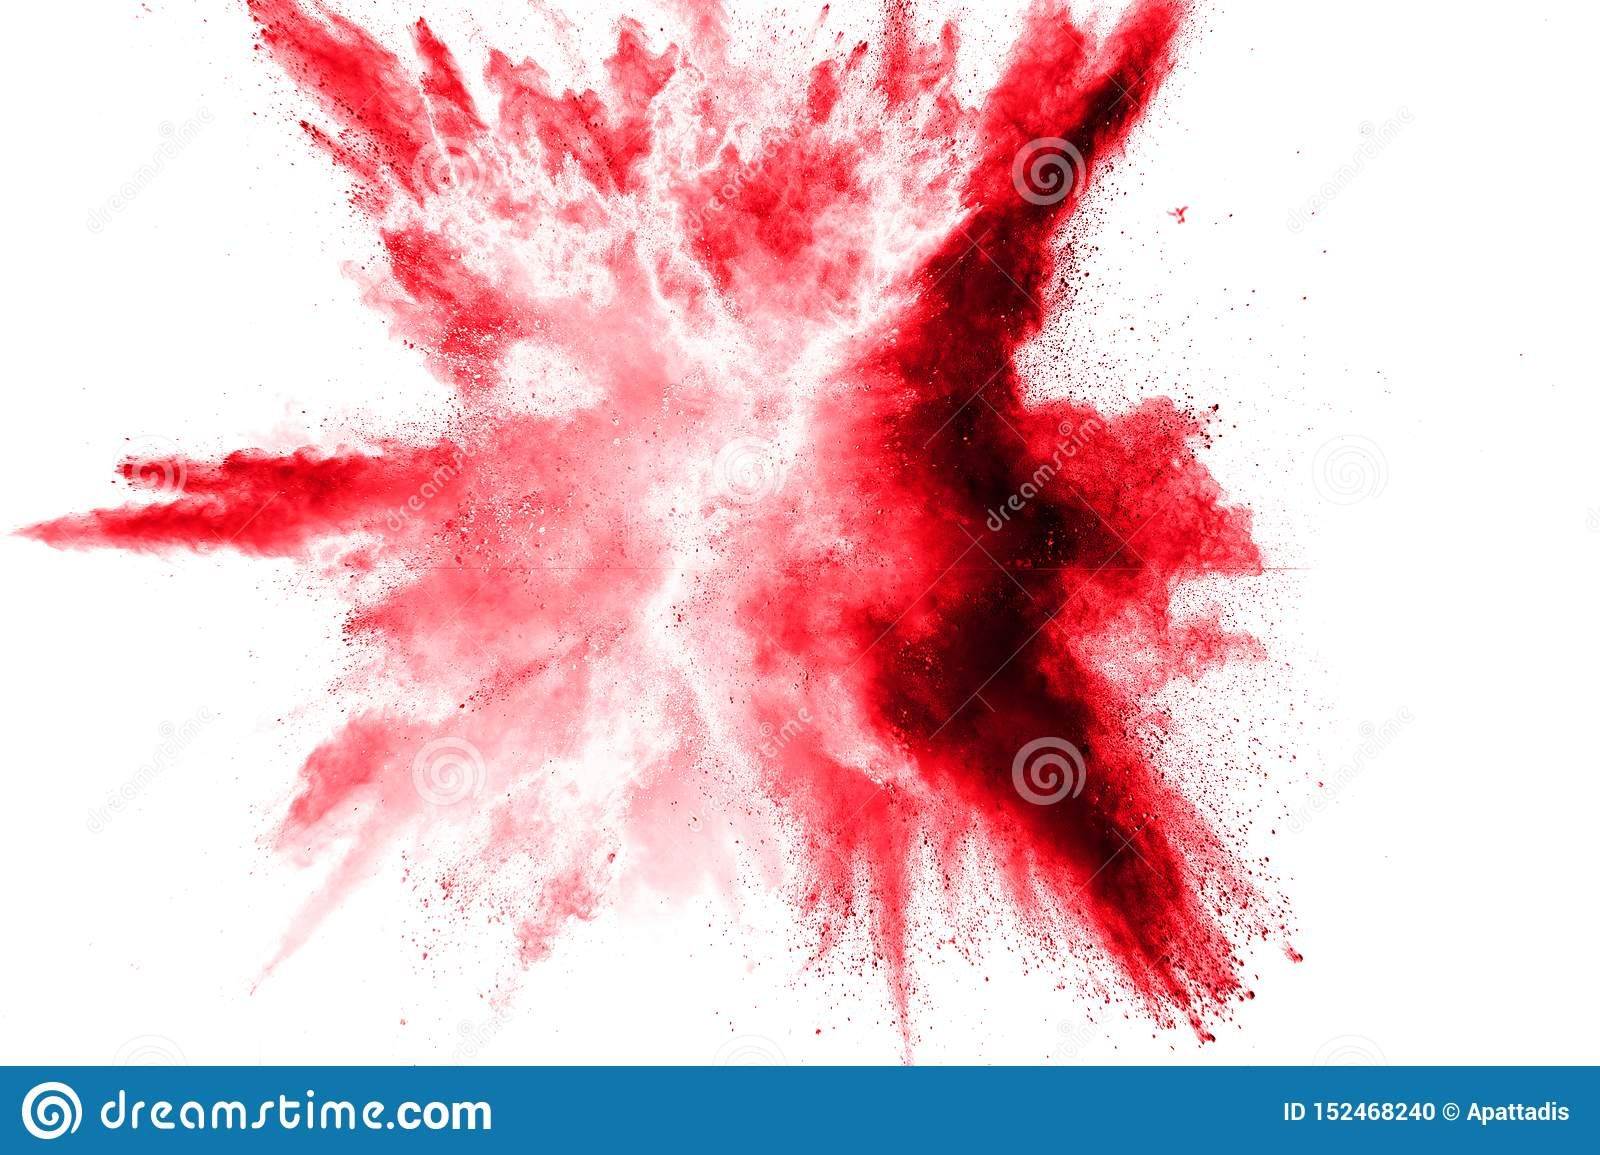 Photo About Abstract Red Dust Splattered On White Background Red Powder Explosion Freeze Motion Of Red Particles Splash Red Artwork Abstract White Background